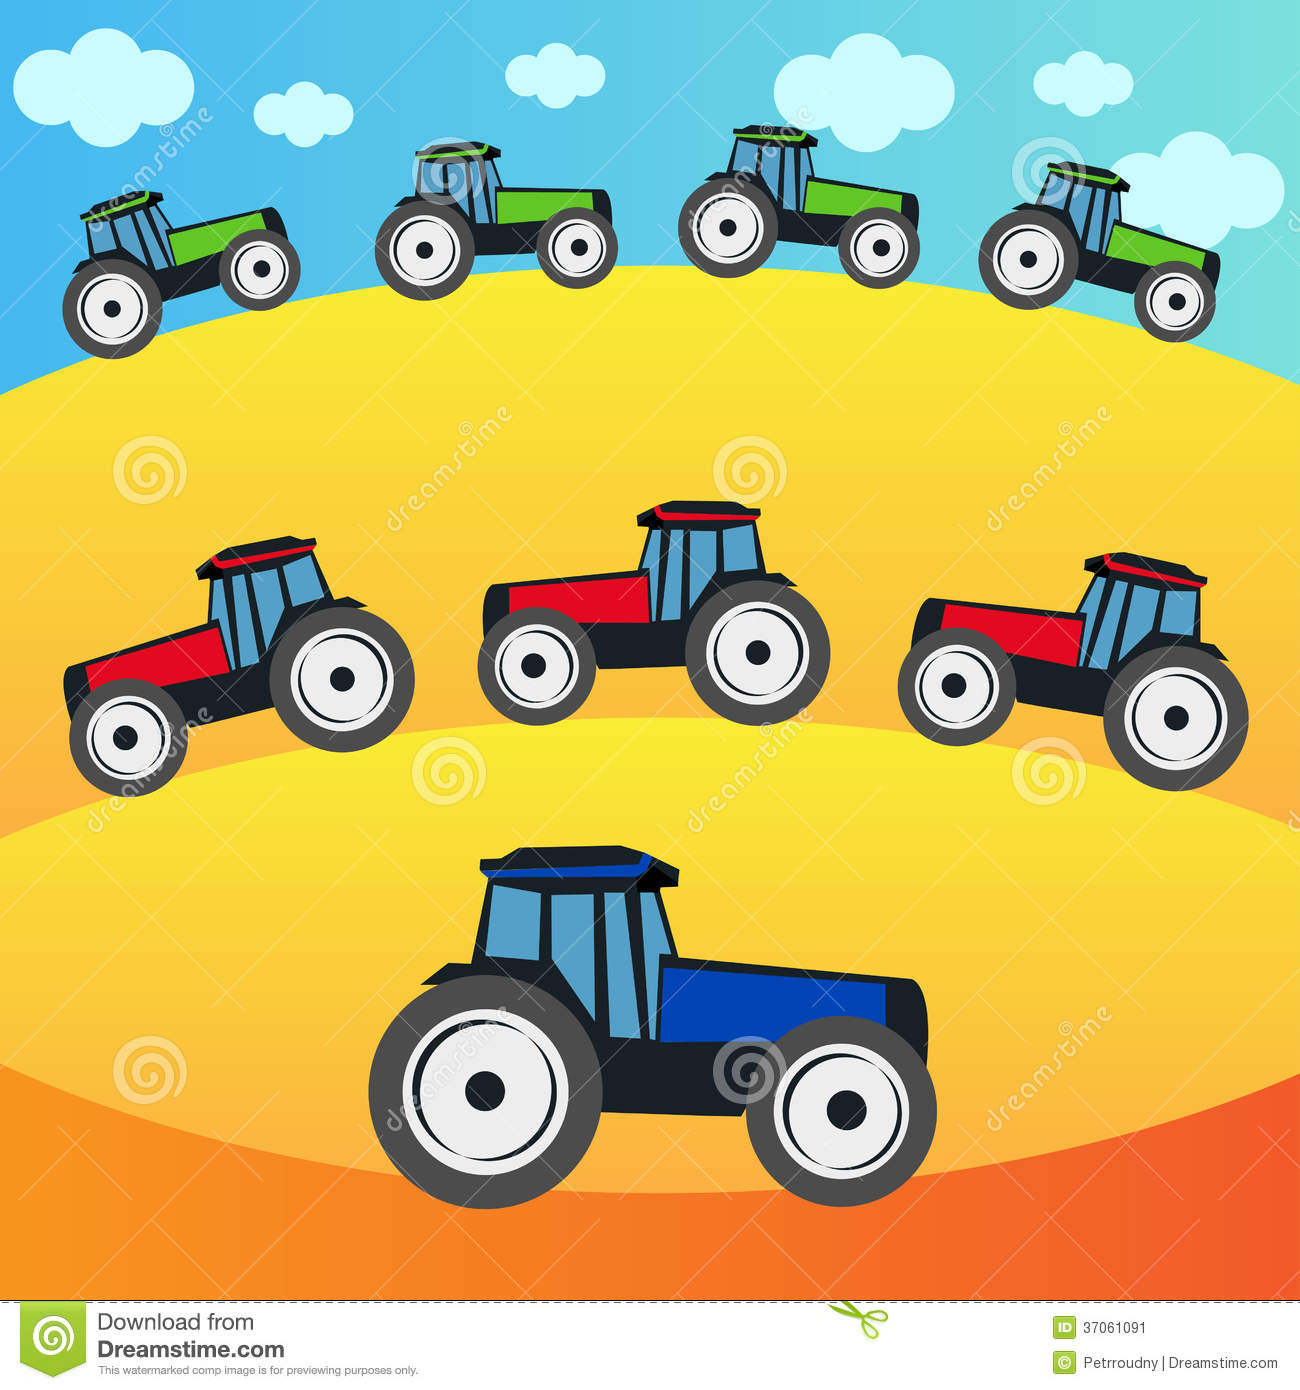 Up The Tractor Green Tractor With Bucket Cartoon : Tractors on the field stock image